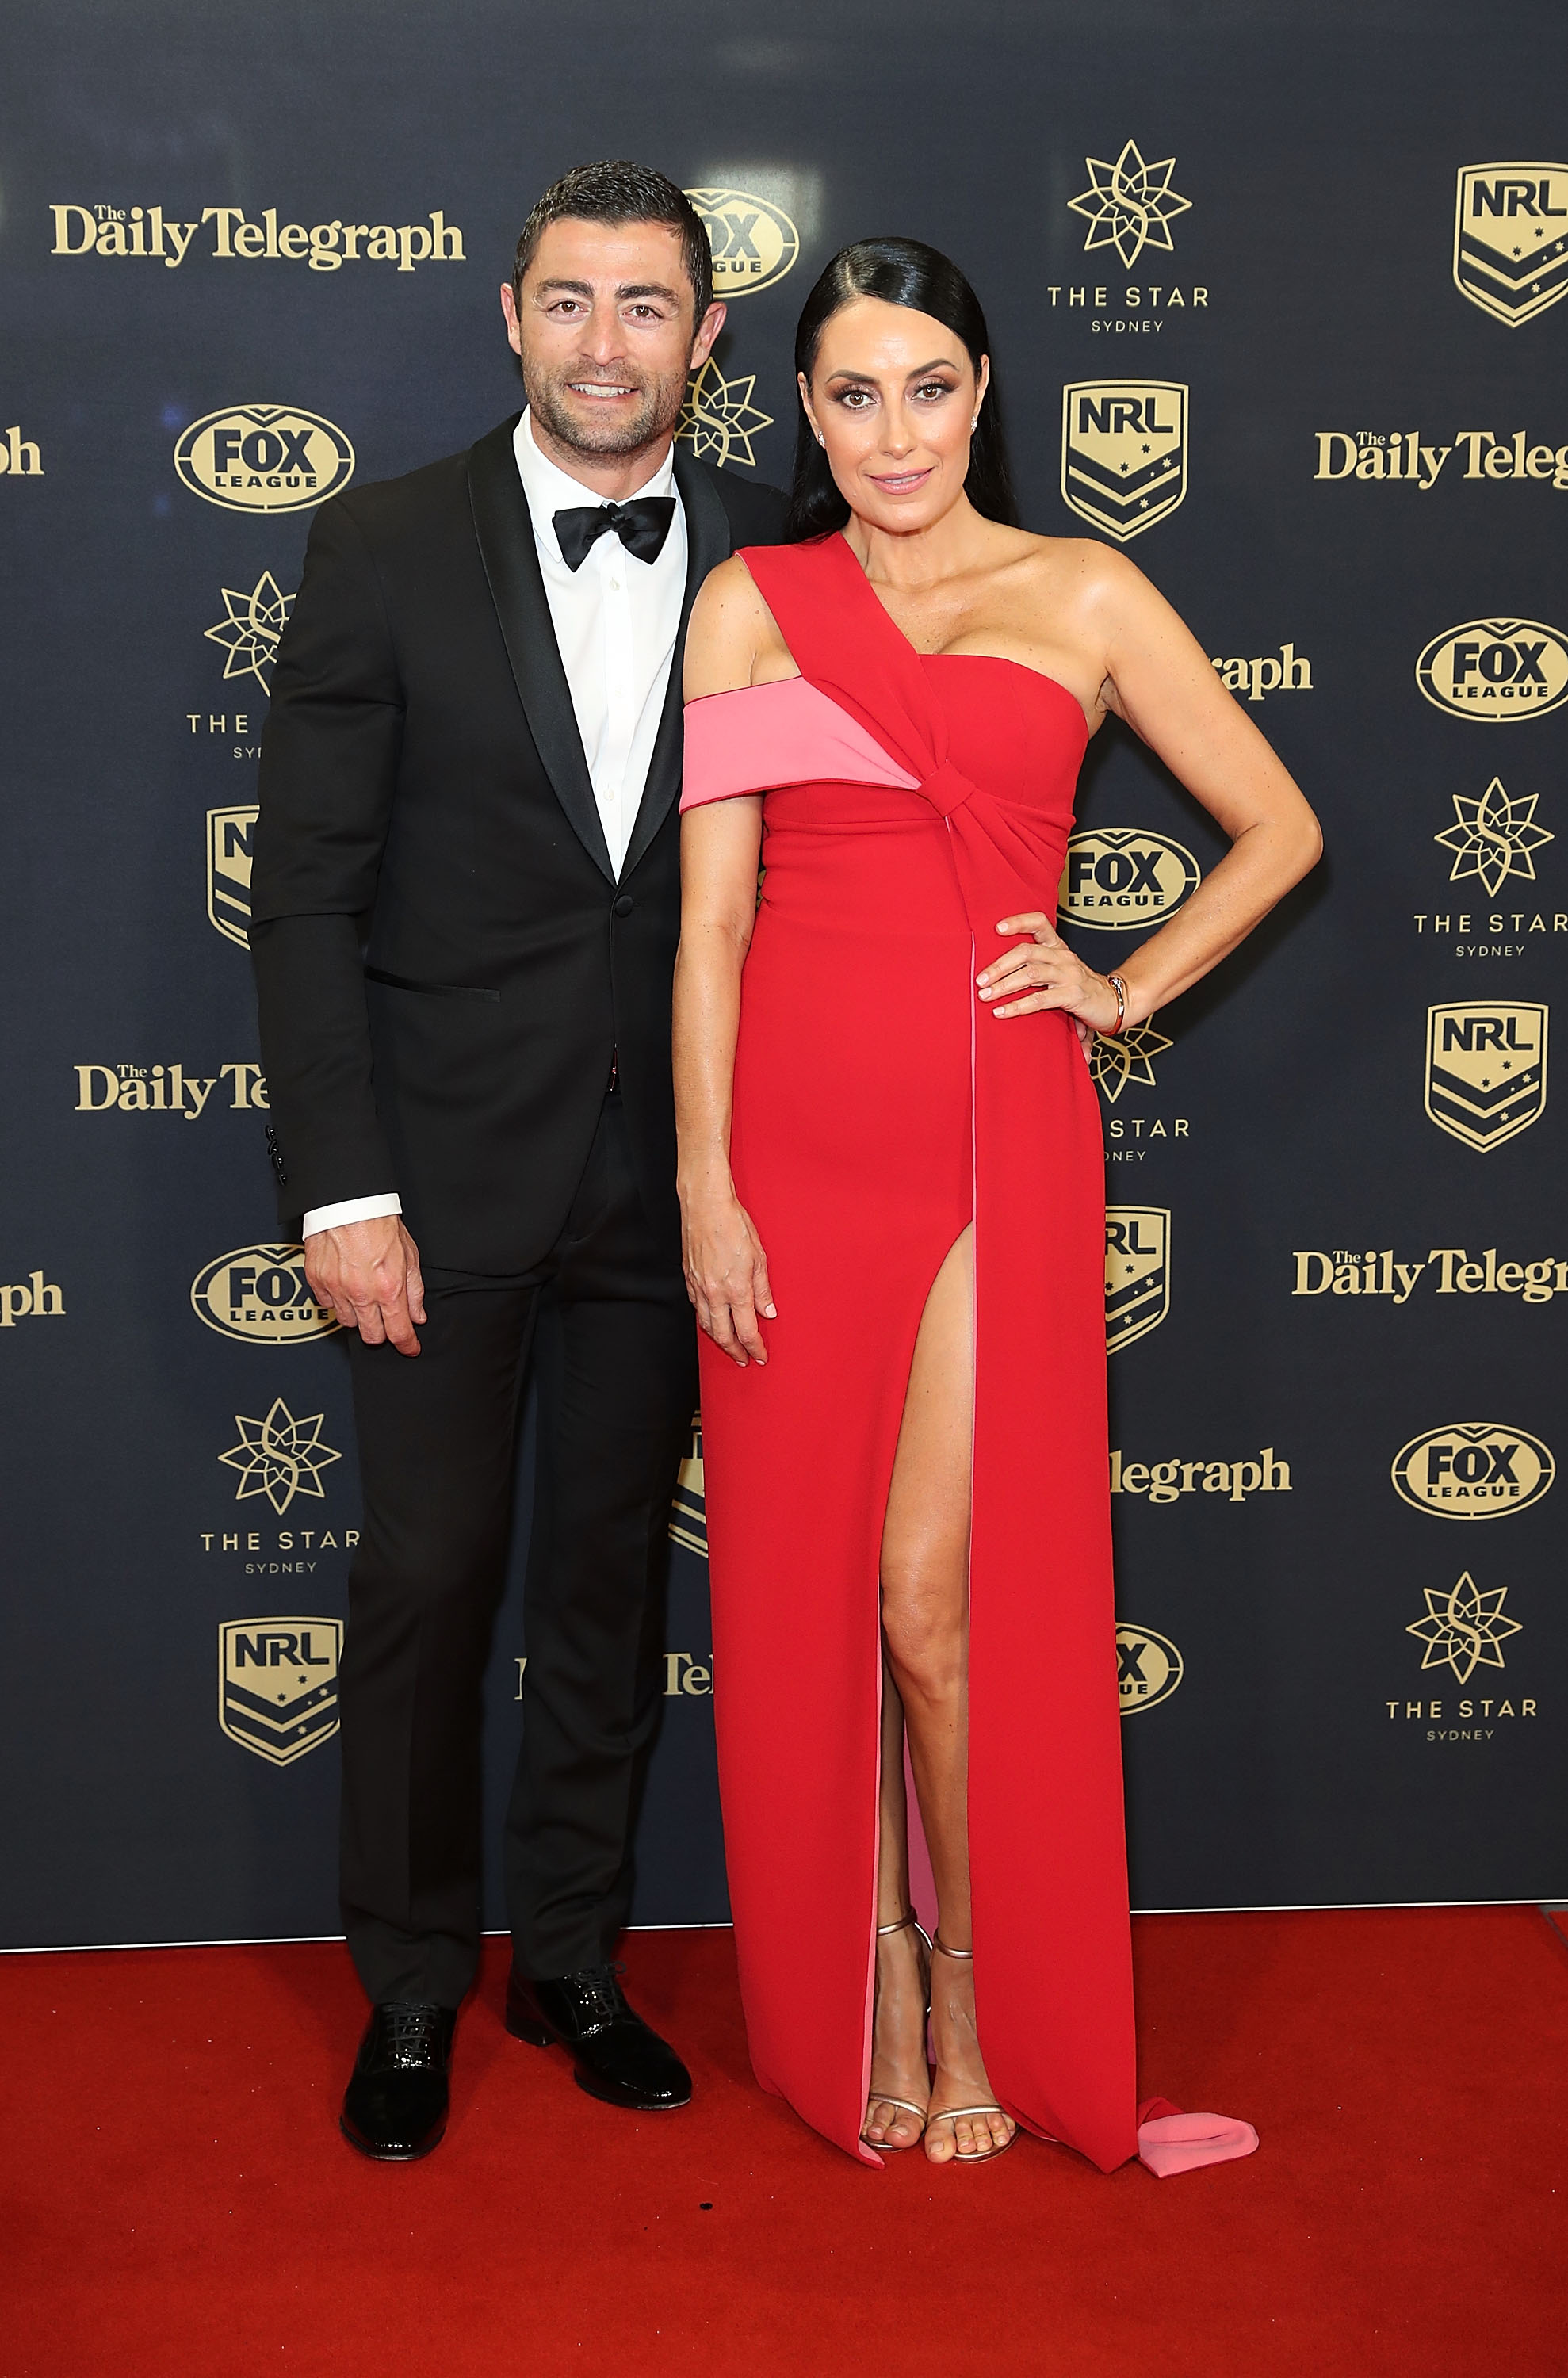 <p>The Brownlow Awards have been and gone and now it's the Dally Ms turn to light up the night.</p> <p>In case you're not the sporty type, a little background ... Just like the Brownlow is the Australian Football League award for best and fairest player, the Dally M is designed to honour the most talented sportsman of the Australian Rugby League (or something like that anyway).</p> <p>The itty bitty details don't concern us all that much because both nights are really more about the wives and partners (at least for us).</p> <p>You see, it's the WAGs that bring all the fabulousness to what can turn into a significant night of style.<br> And, as you'll see from the stunning images here in our exclusive red carpet album, 2017 might well be the most fashionable night yet.</p> <p>Take it away former Roosters captain Anthony Minichiello and wife Terry Biviano in custom-made Mariam Seddiq.</p> <p>To see more of the undeniable glitz and glamour click through to see all the red carpet highlights from the 2017 Dally M Awards.</p>